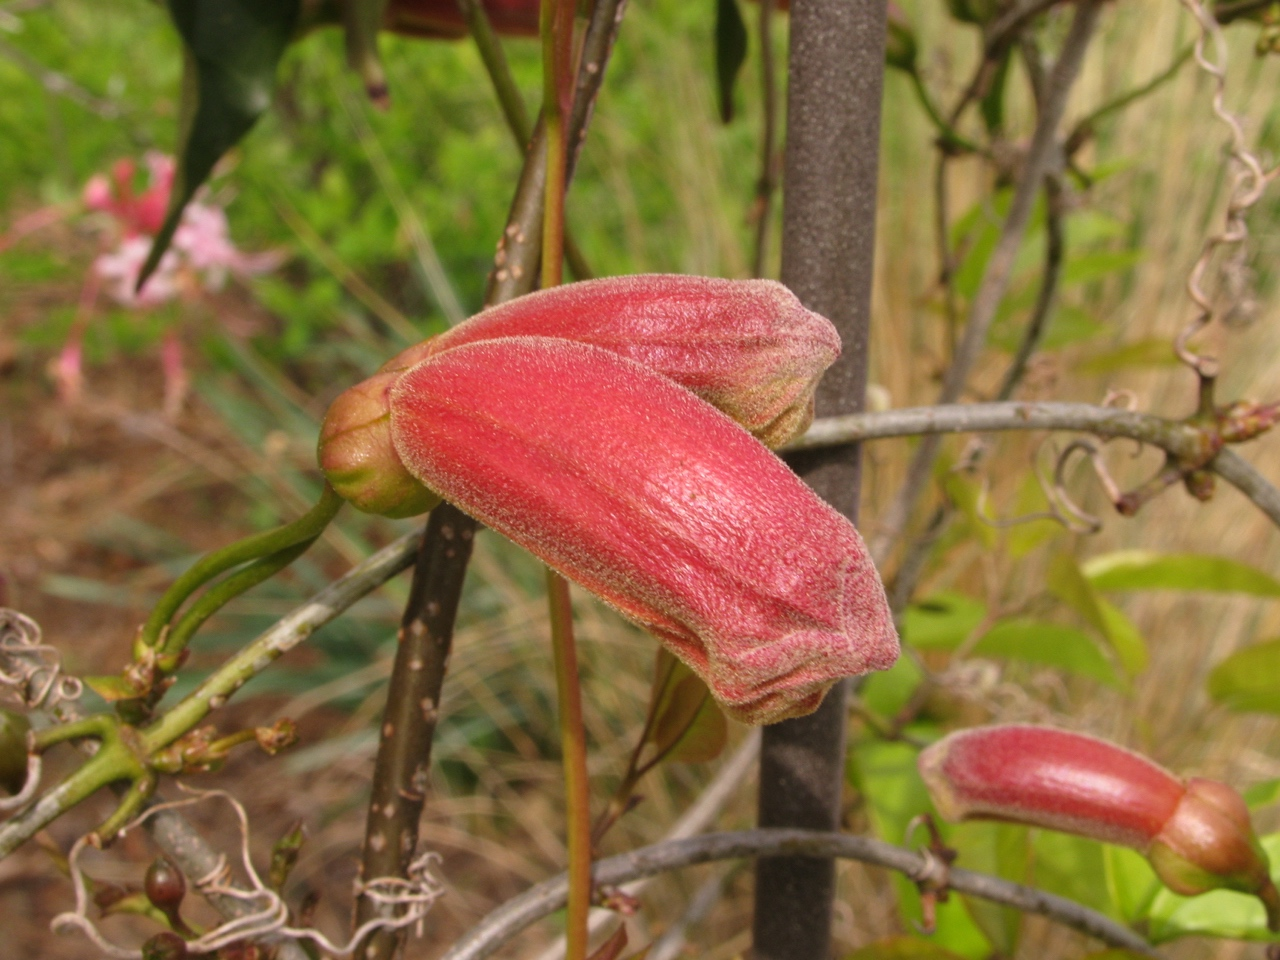 The Scientific Name is Bignonia capreolata. You will likely hear them called Crossvine. This picture shows the Flower buds ready to open of Bignonia capreolata